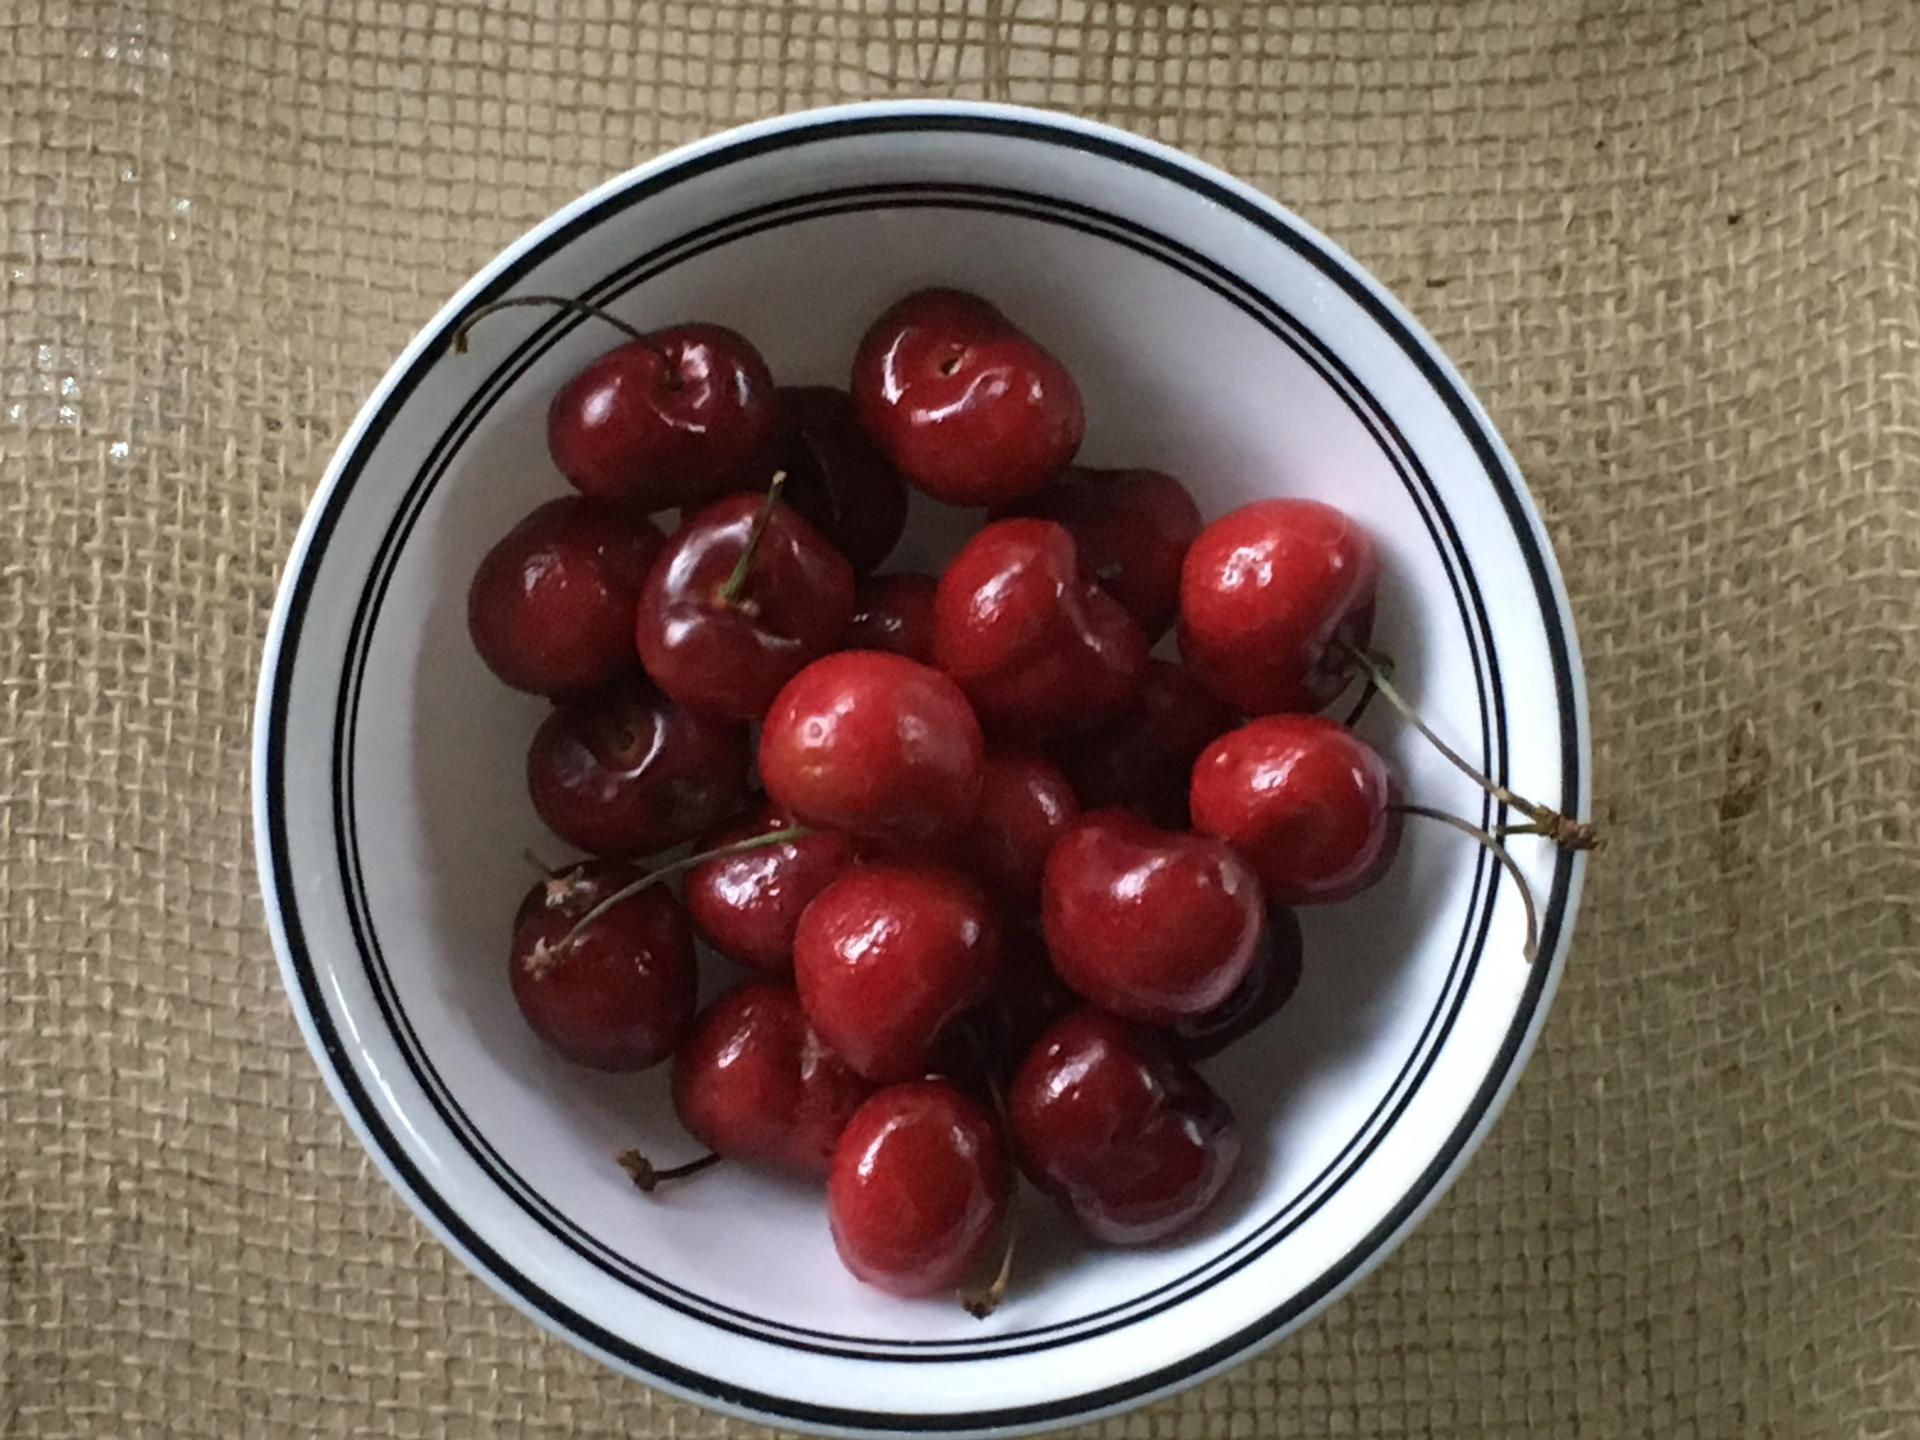 lettinggocherries